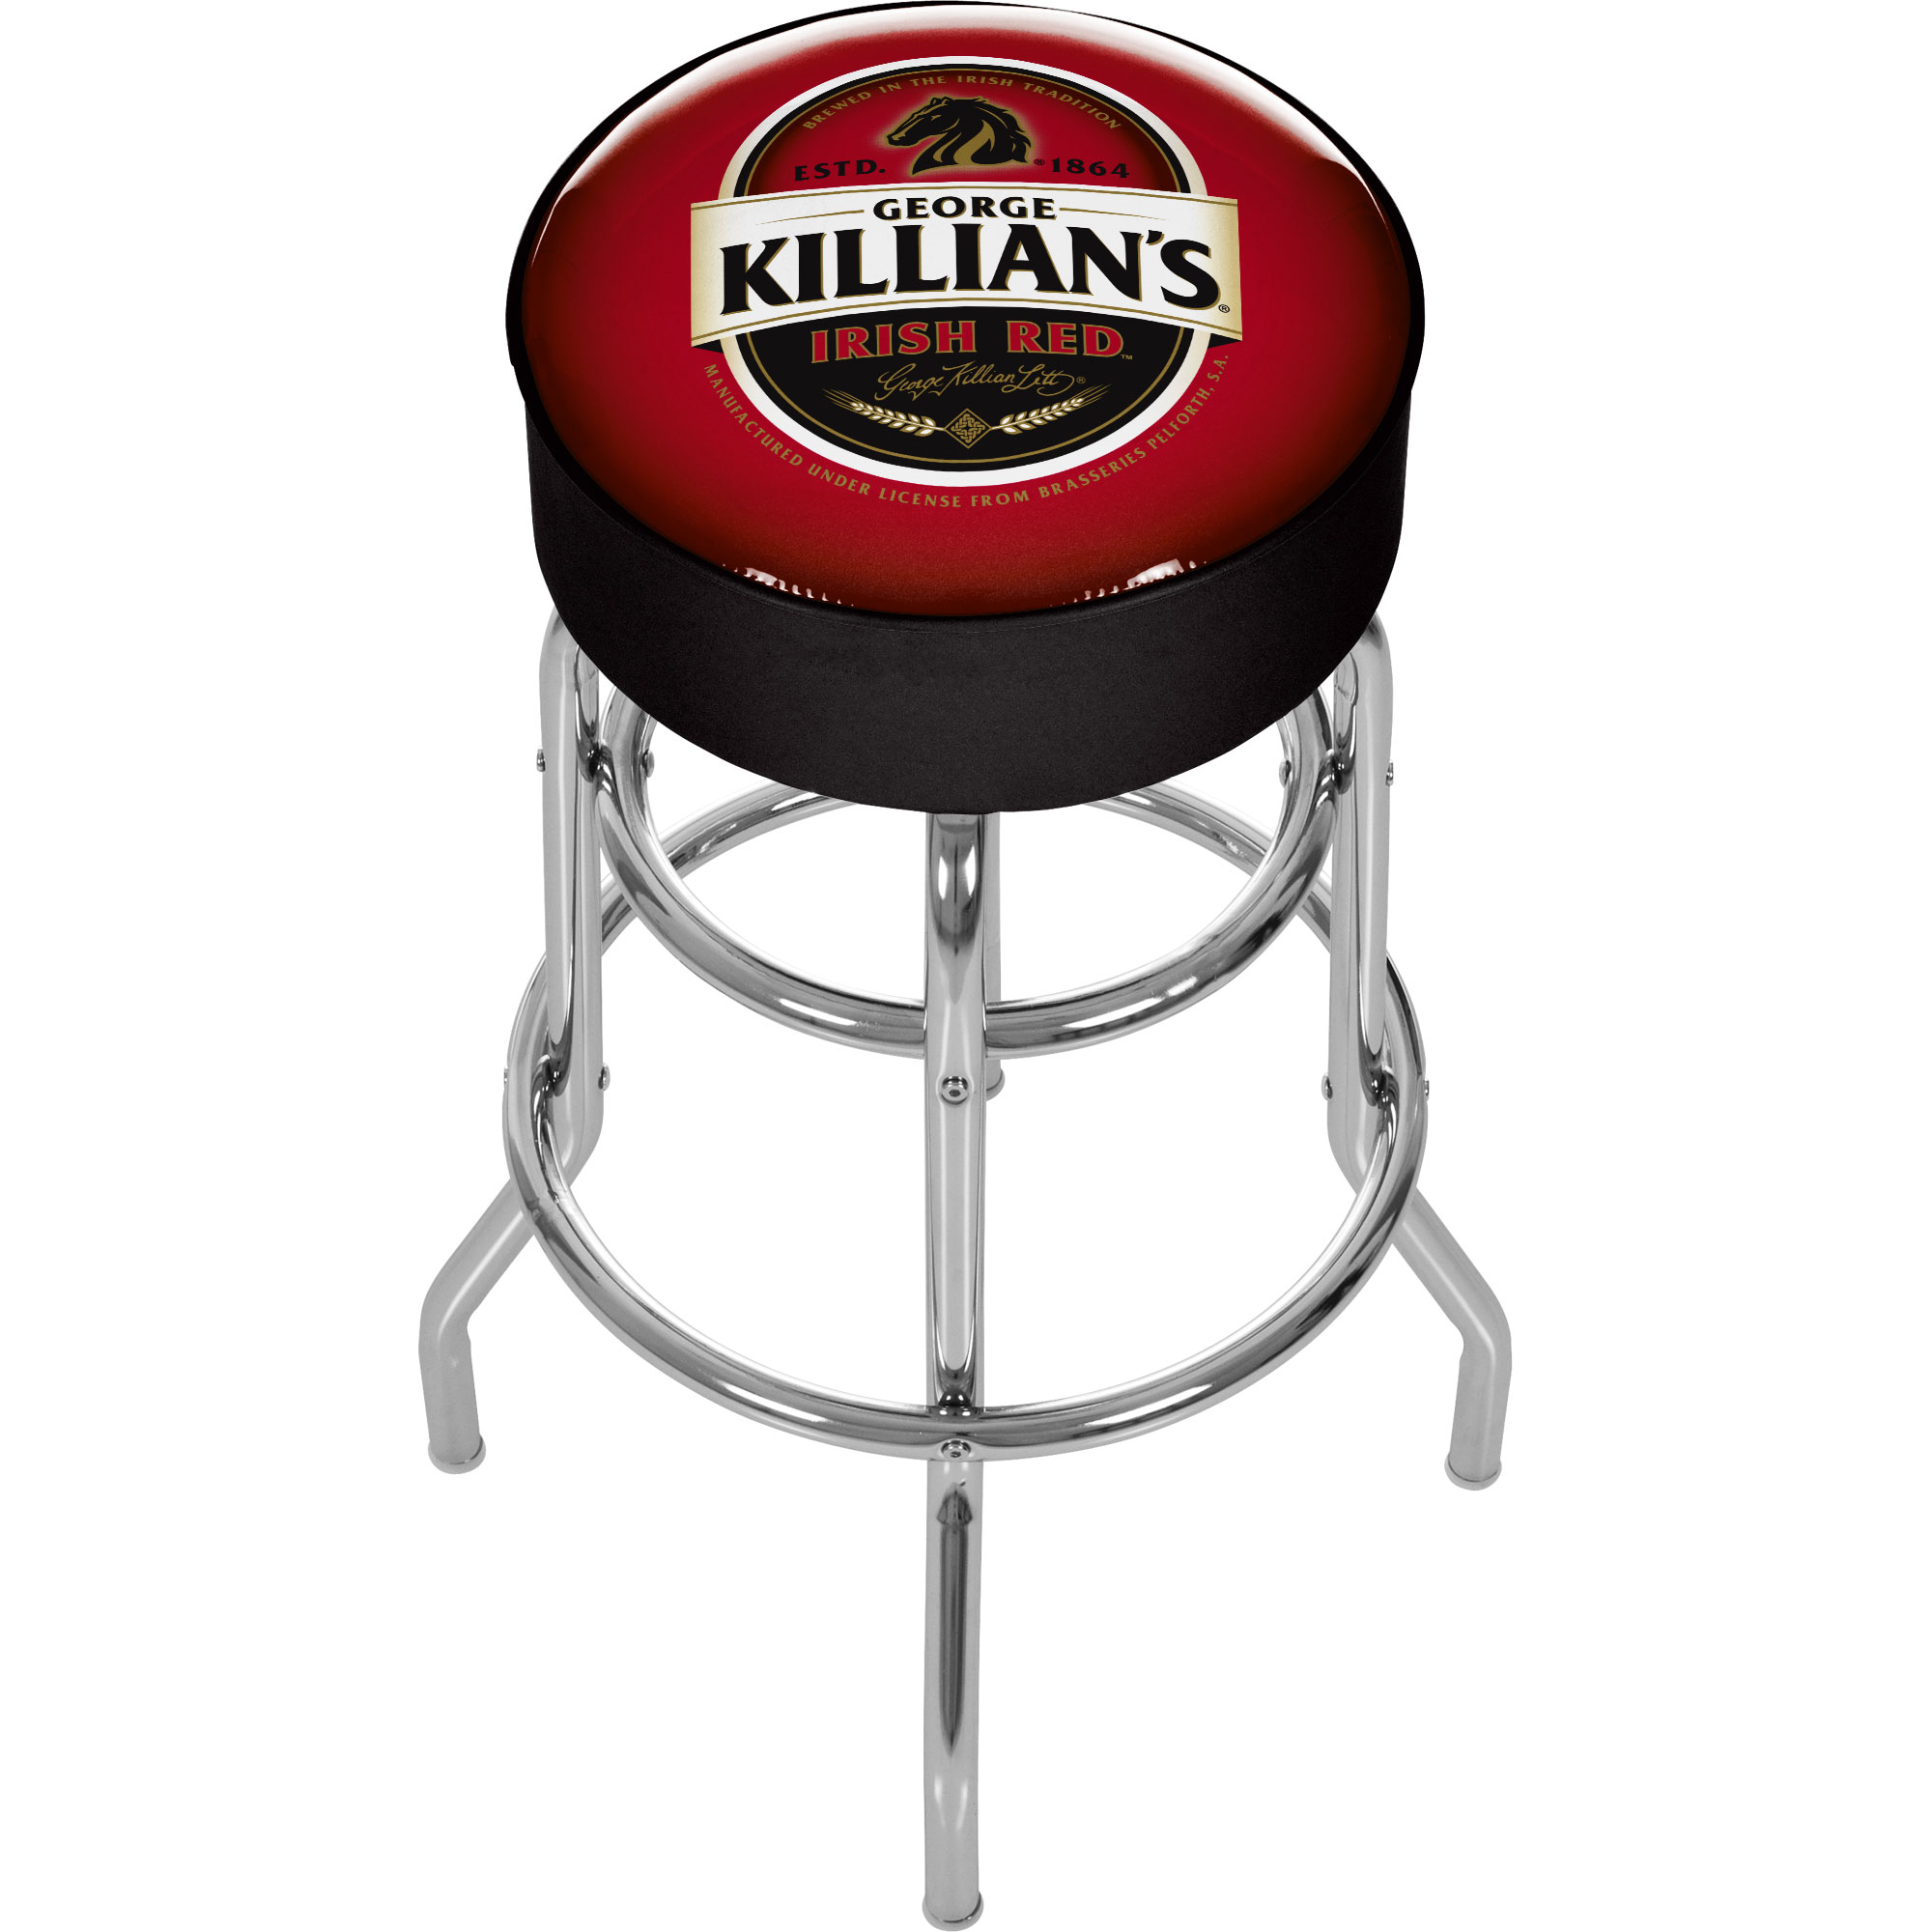 George Killians Irish Red Padded Bar Stool - In Usa Tools Garage Organization